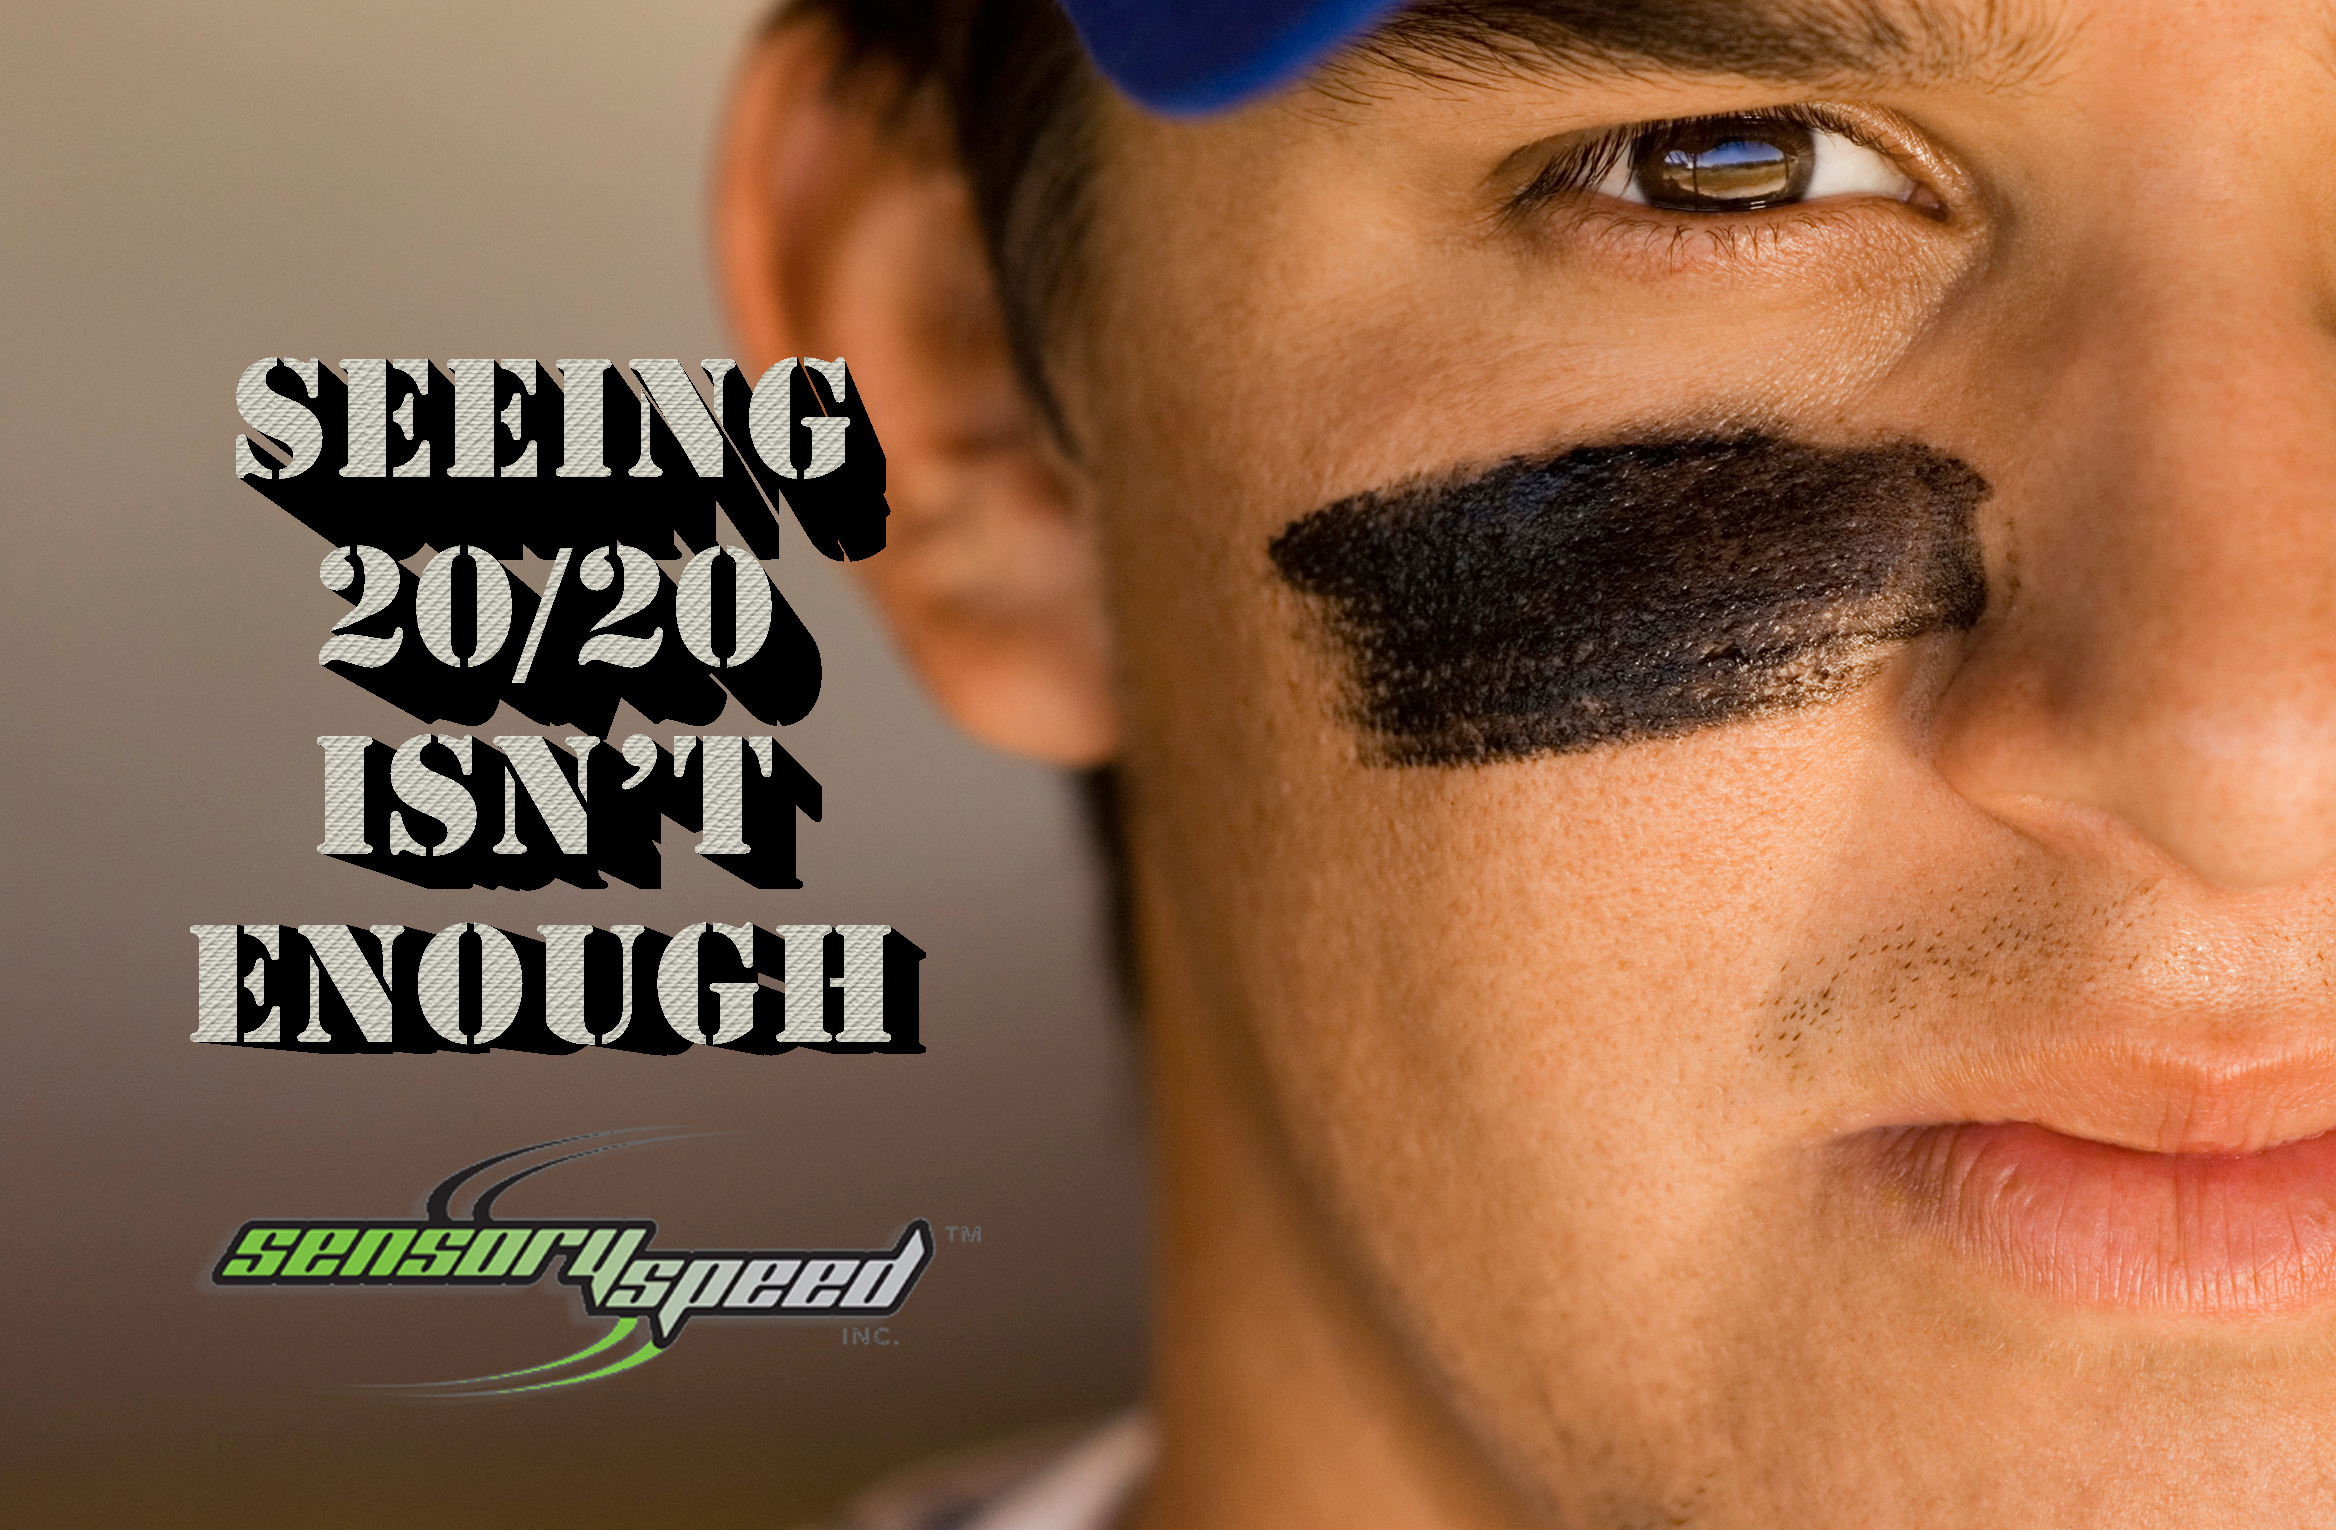 Finished FB Ad Baseball player face upclose   (FB Ads) (3D Text).jpg